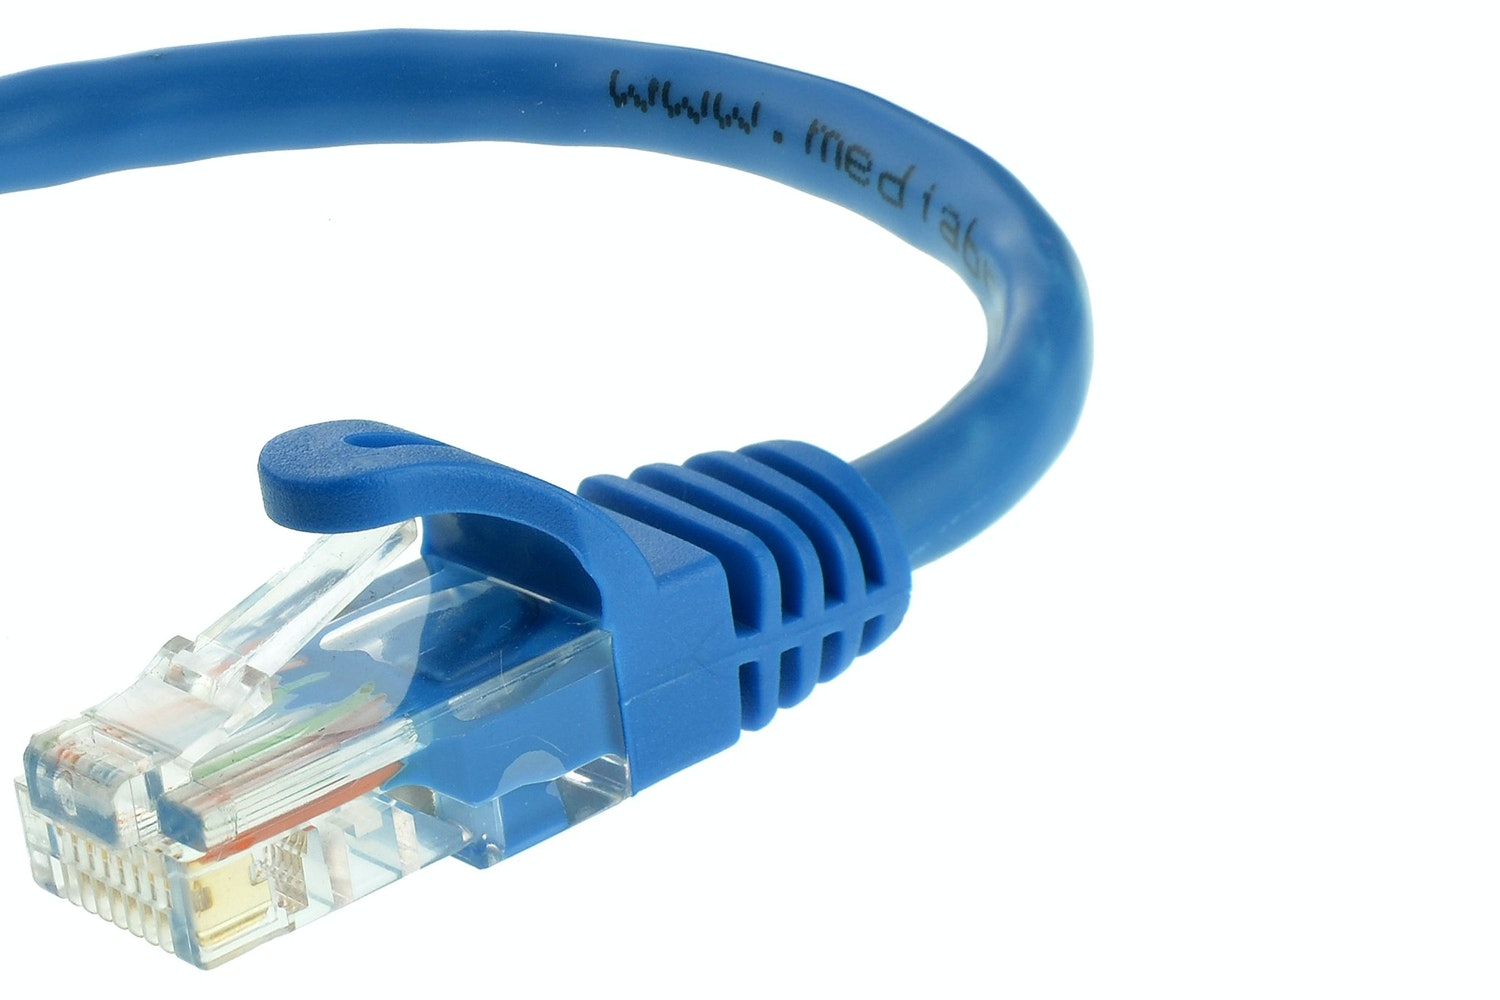 CAT 5 Ethernet Cable | 15m